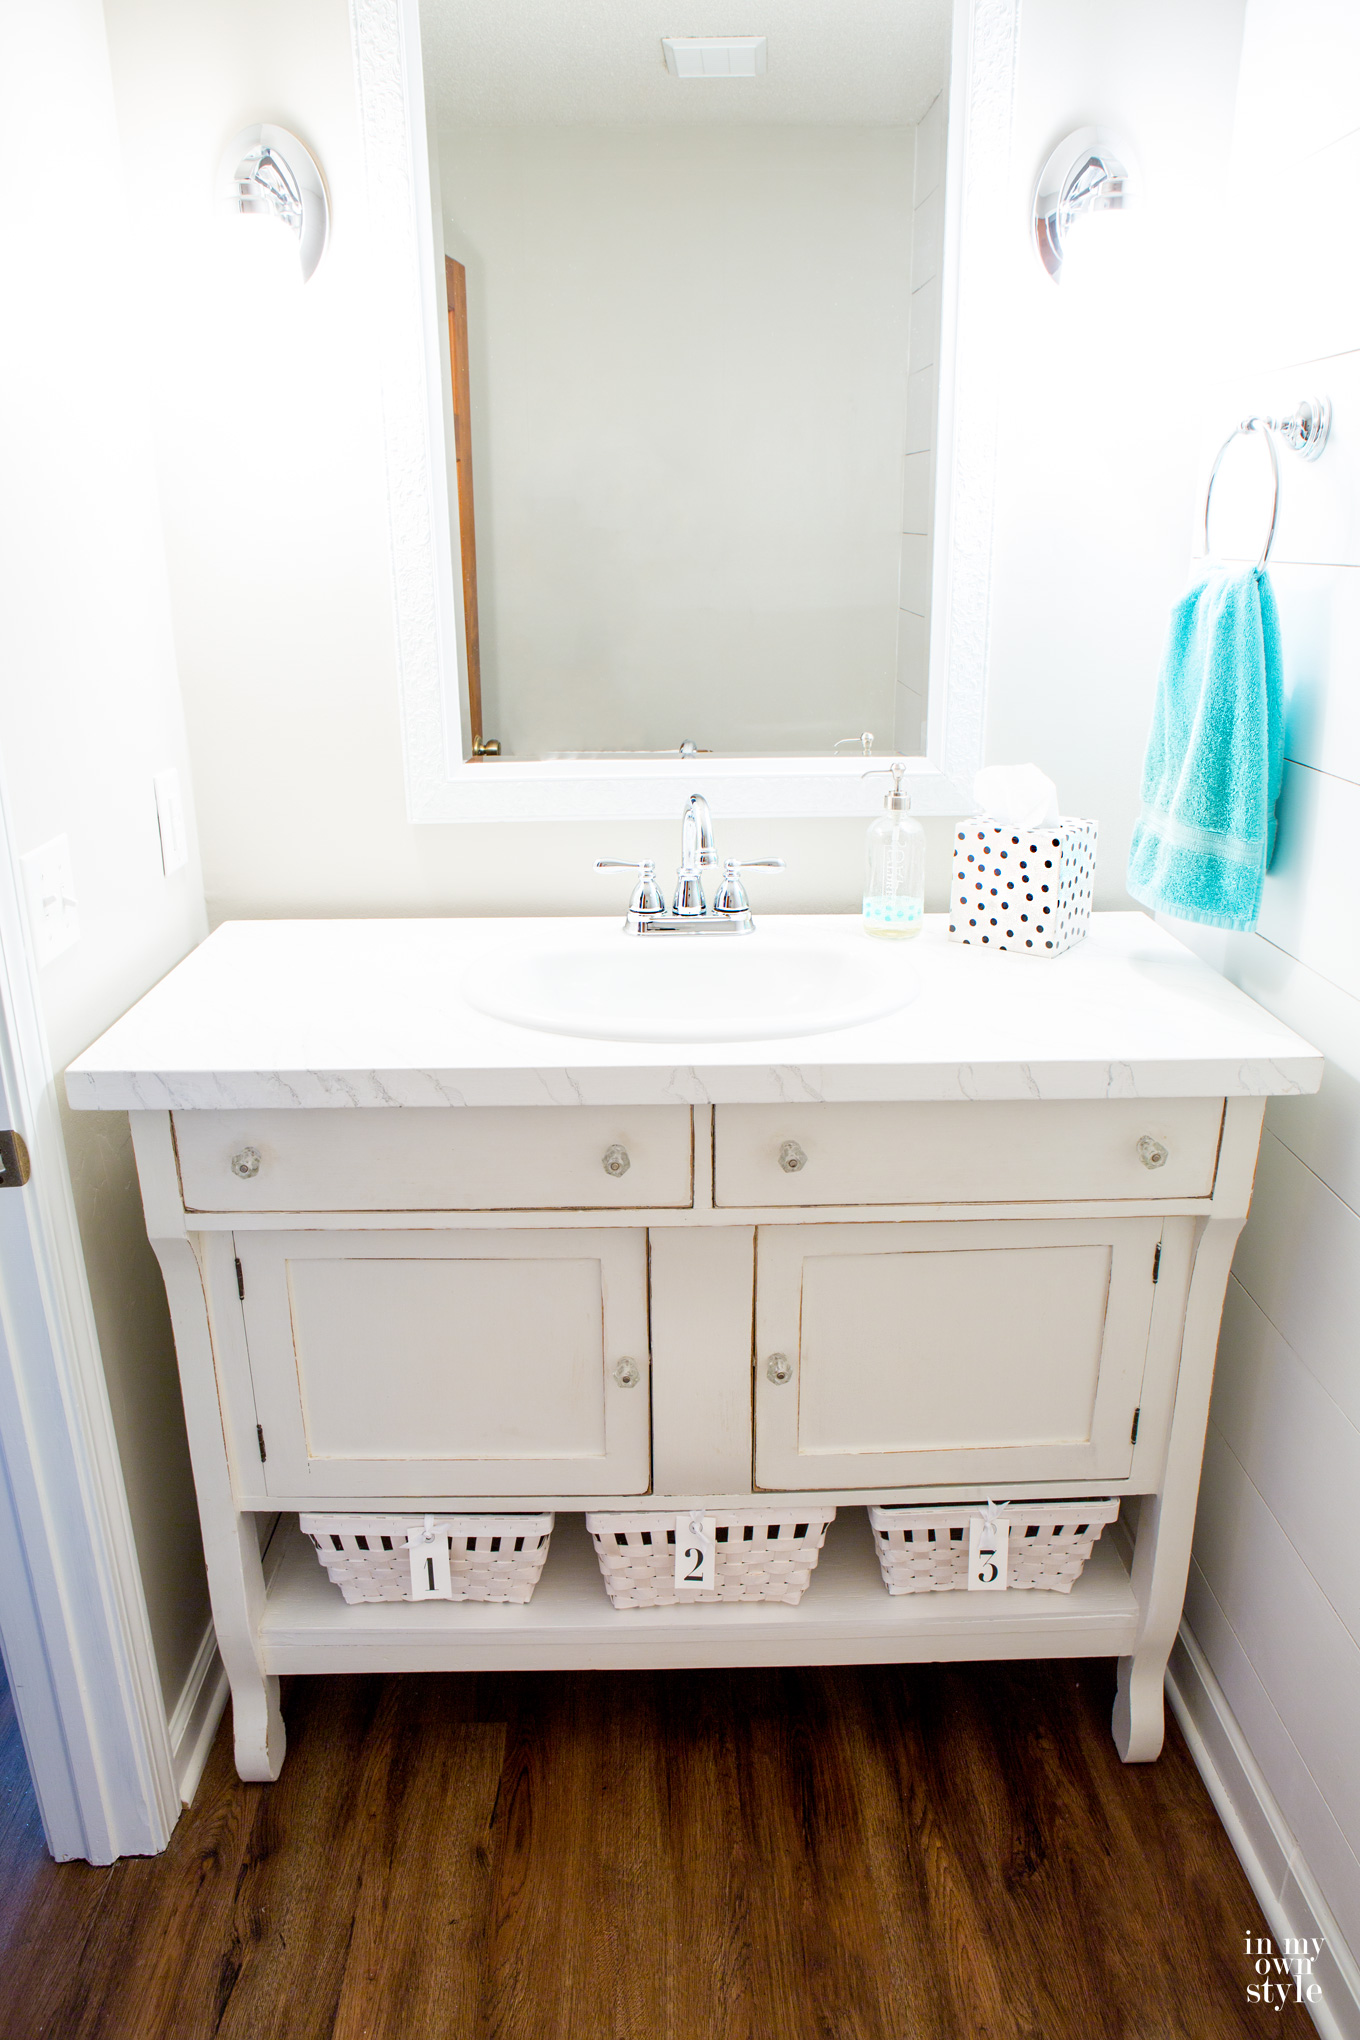 10 Helpful Tips For Making The Most Of Your Small Bathroom Home Stories A To Z